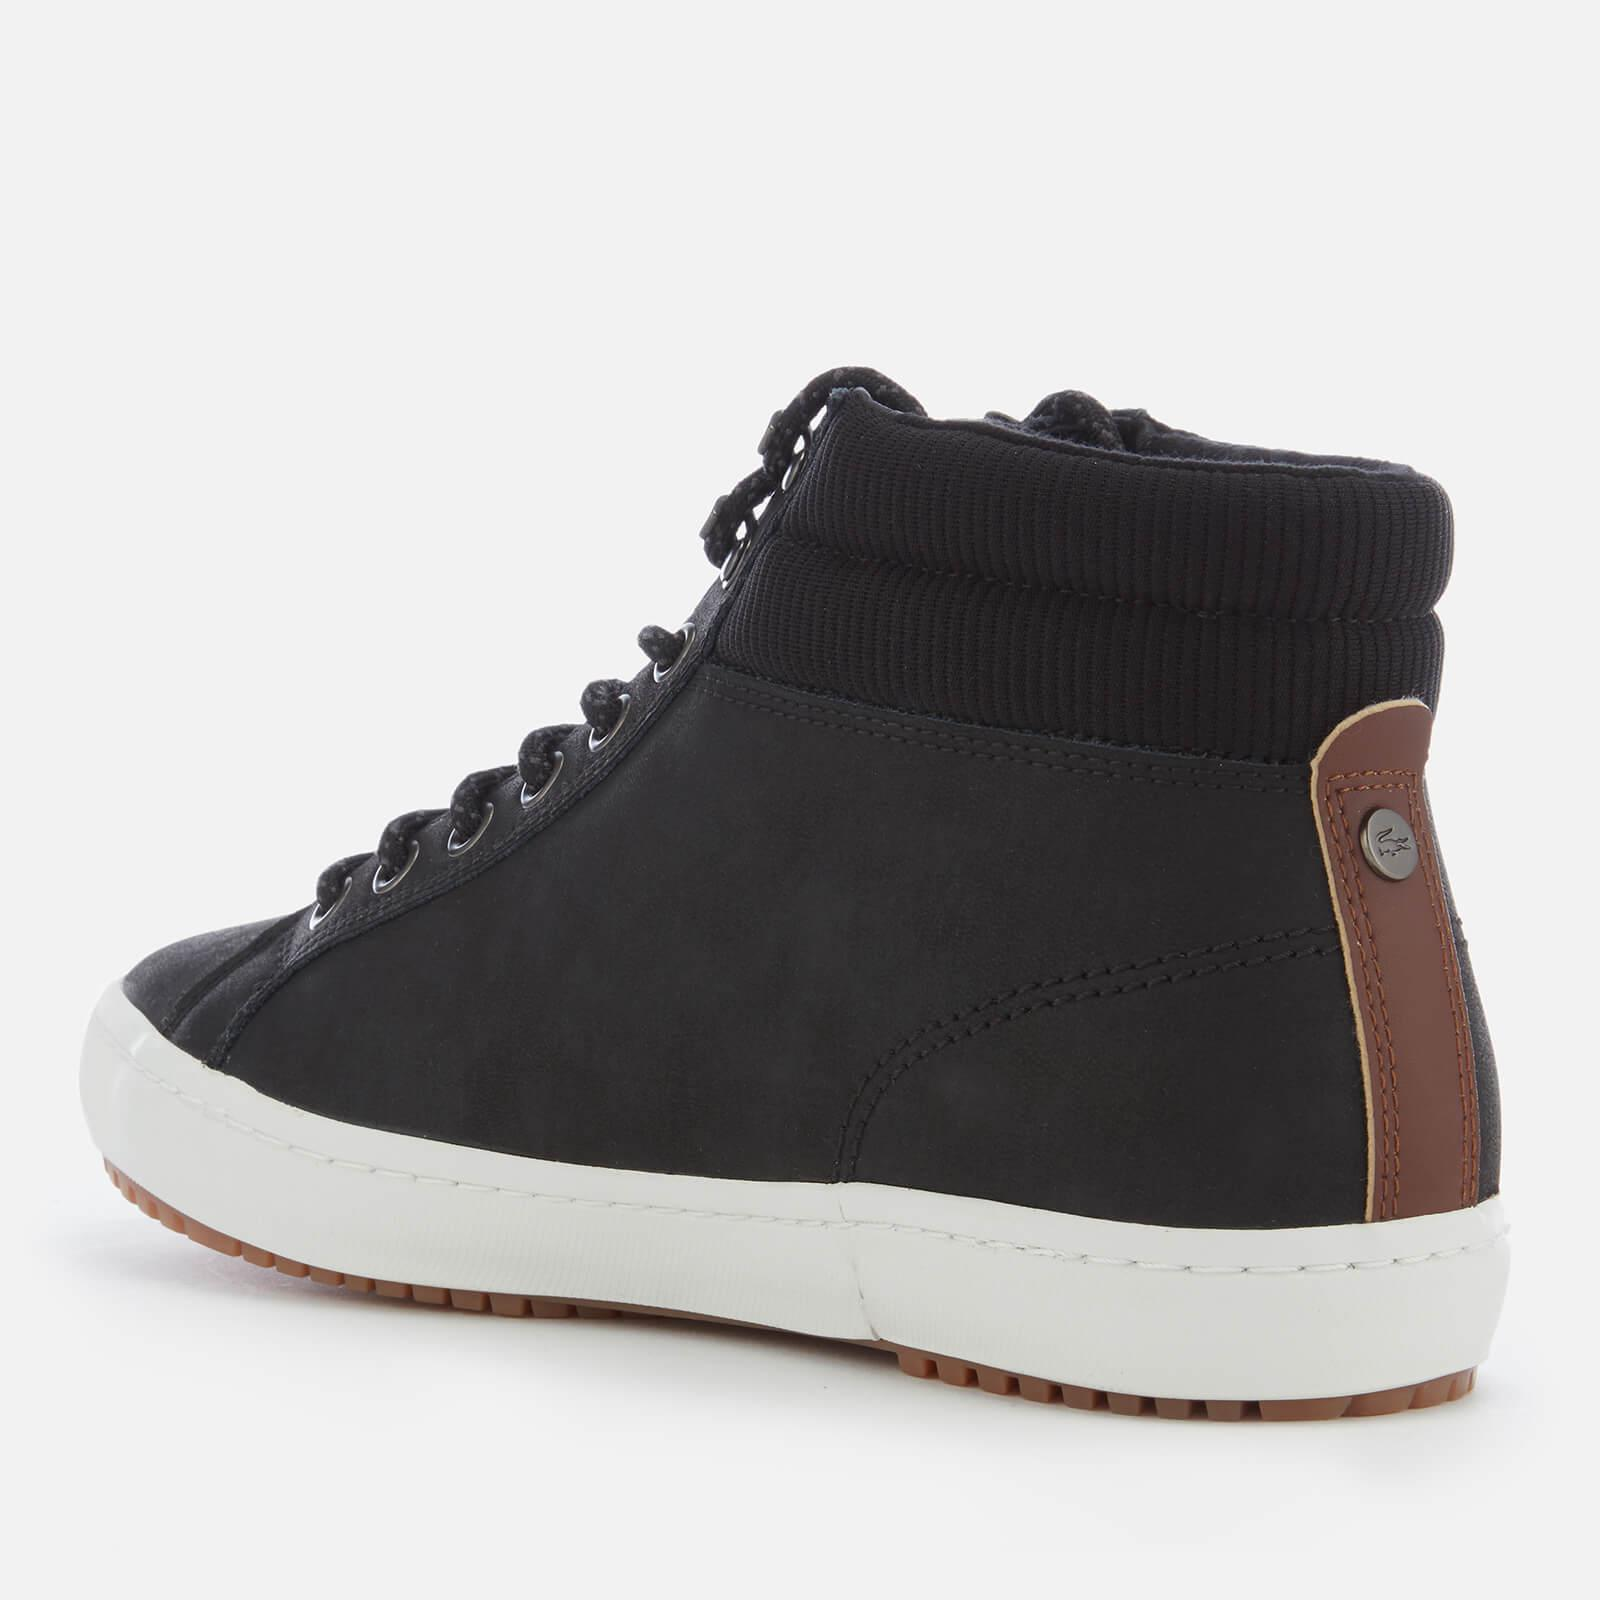 aa7380b4d1a2 Lyst - Lacoste Straightset Insulate C 318 1 Water Resistant Leather ...